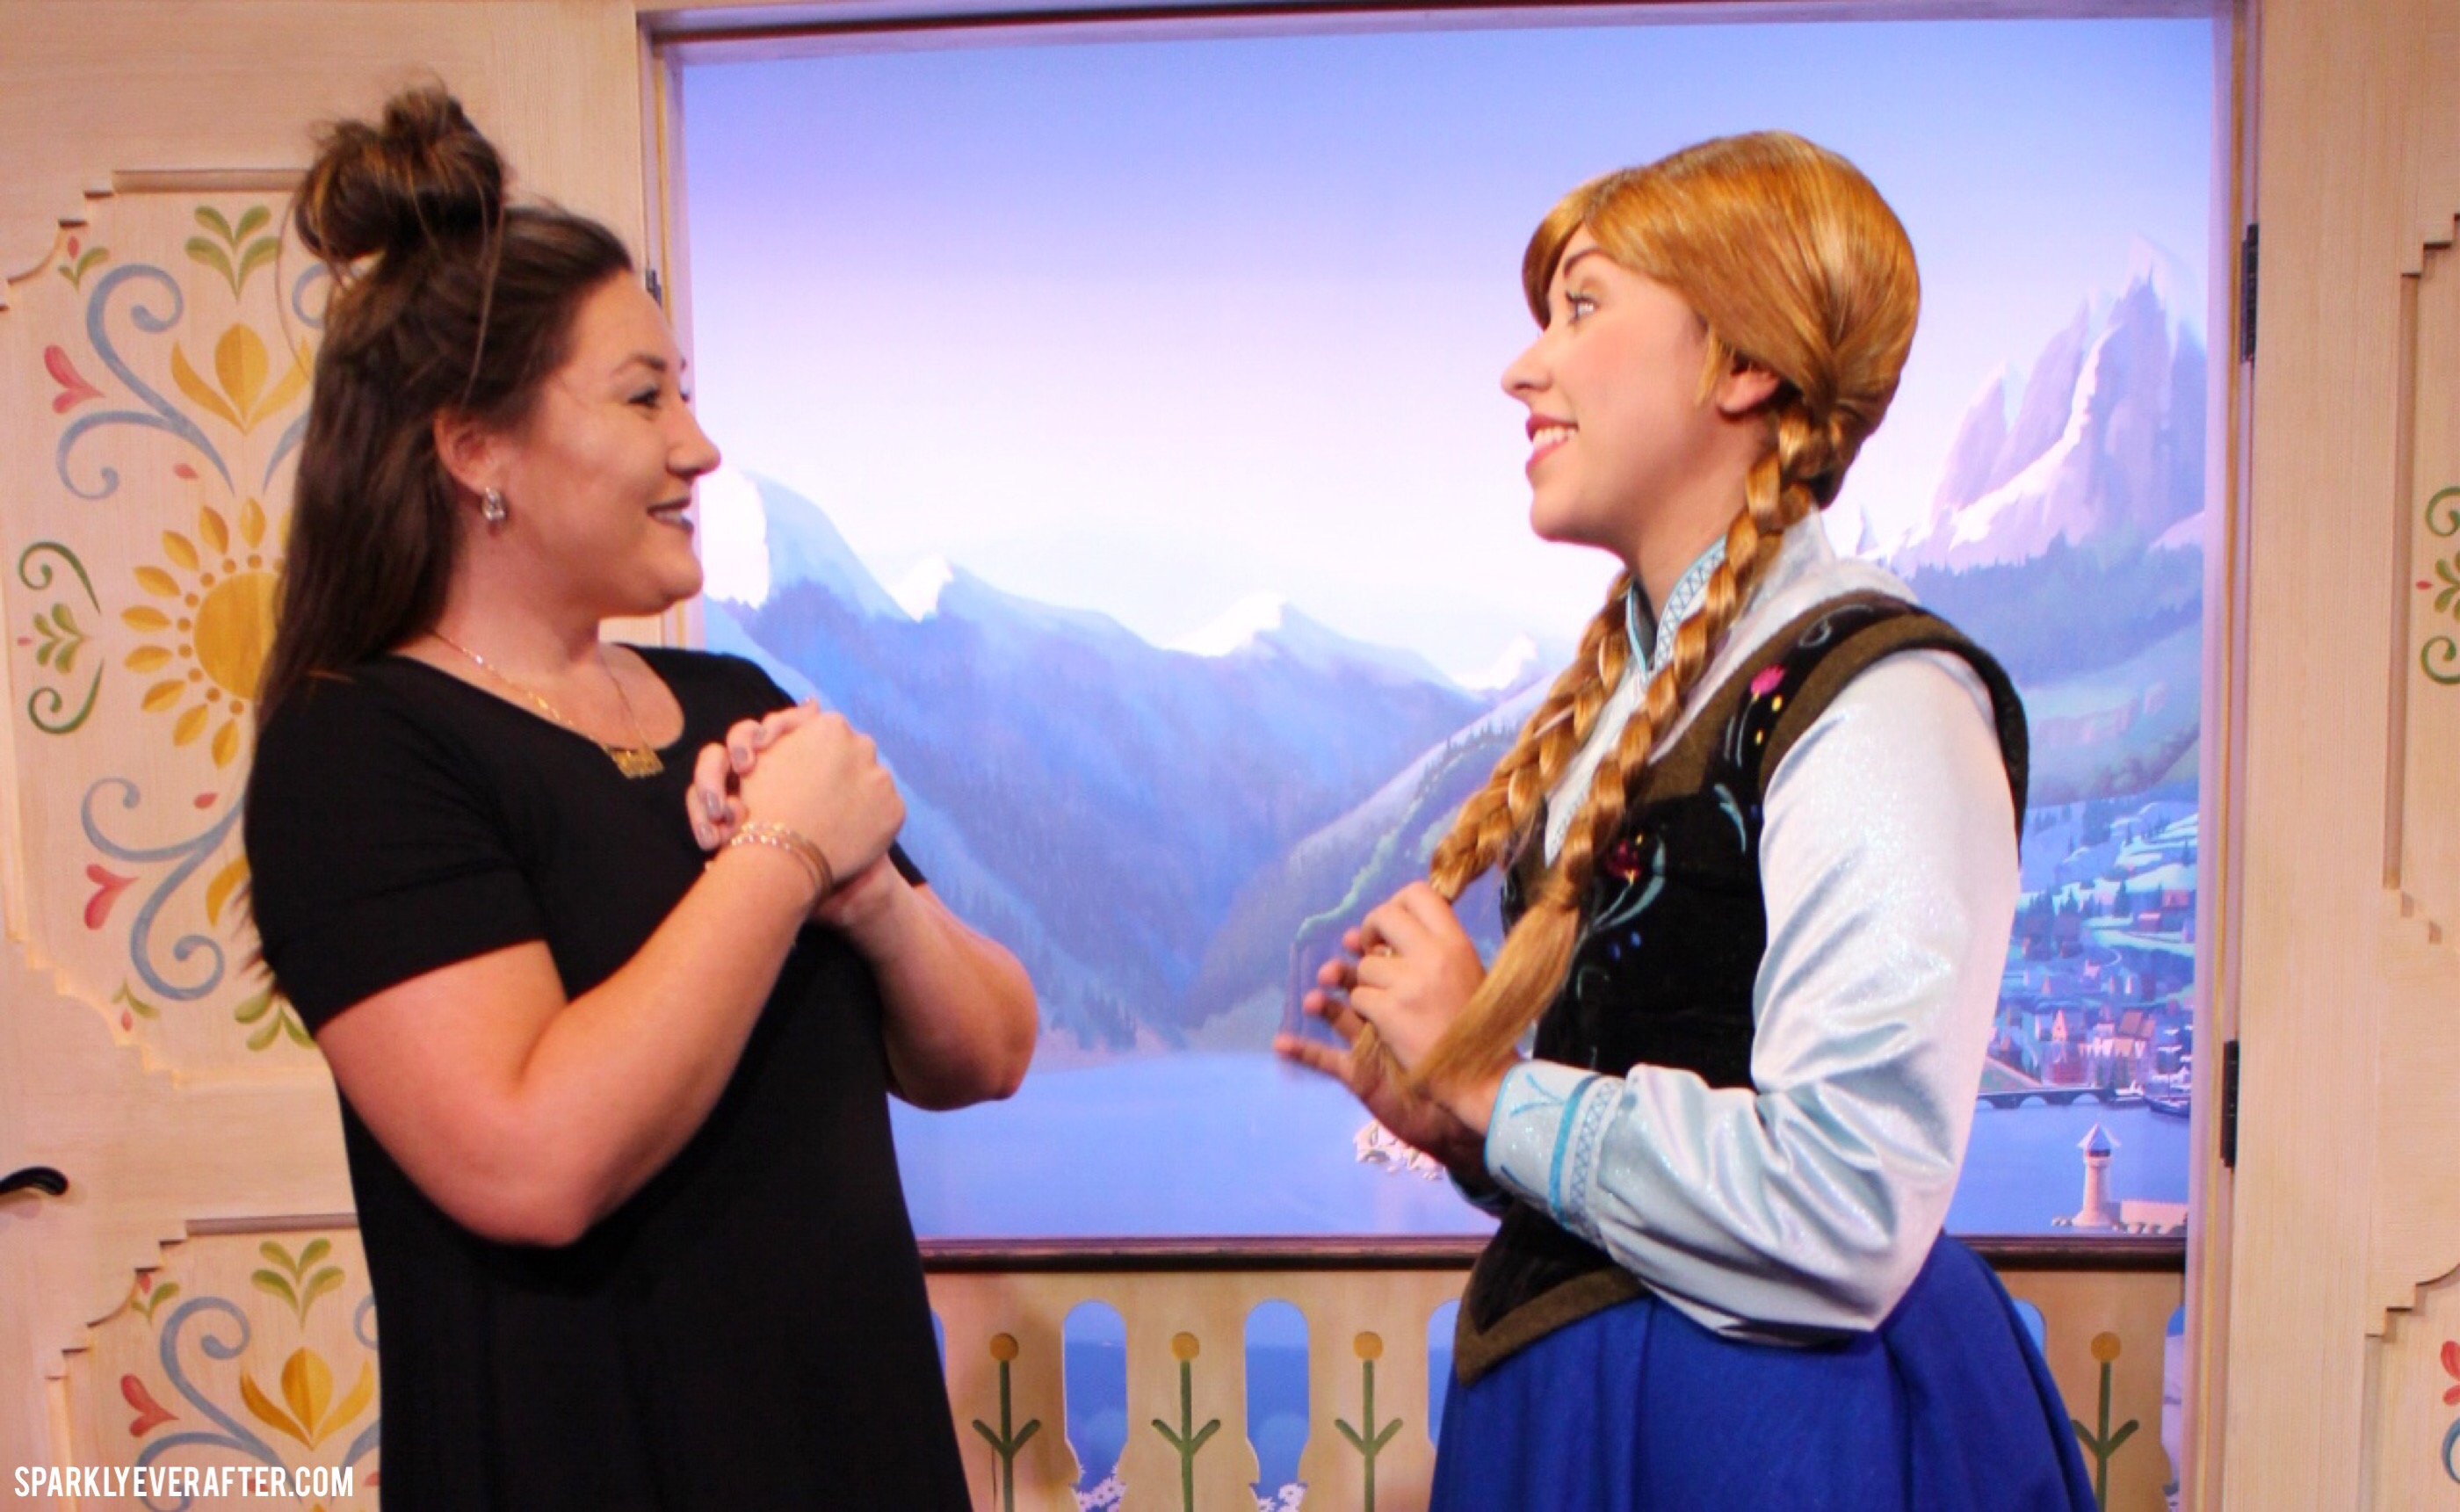 Elsa and anna epcot meet greet more sparklyeverafter maelstrom tapestry in royal sommerhus queue epcot norway pavilion frozen royal sommerhus elsa and anna meet and greet sparklyeverafter kristyandbryce Gallery